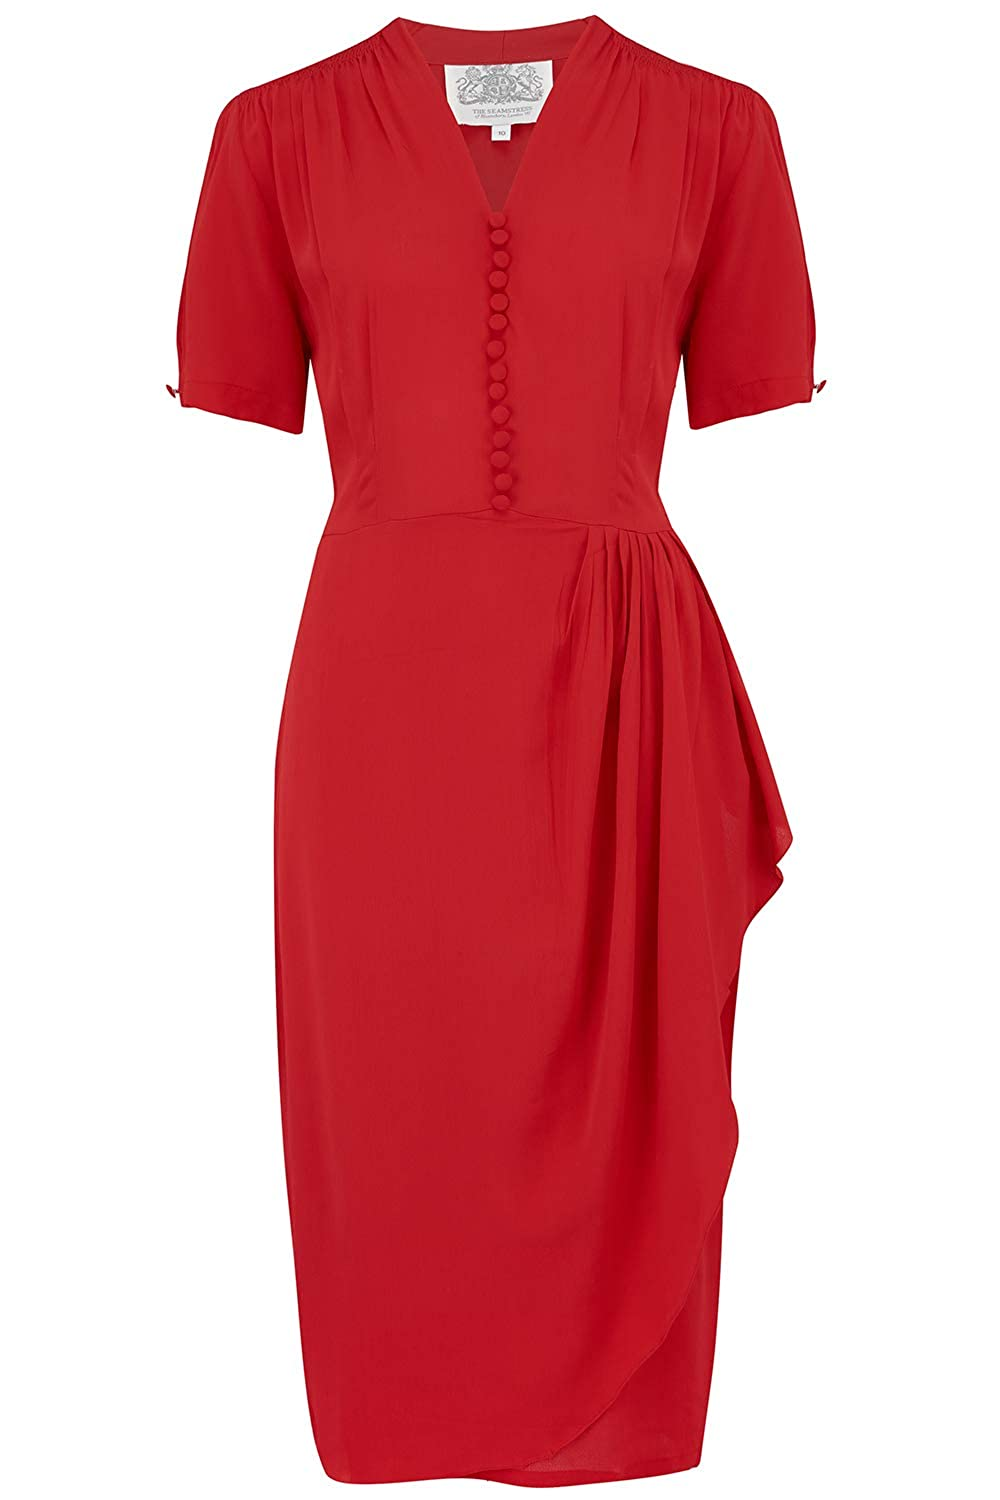 1940s Dresses | 40s Dress, Swing Dress 40s Red Authentic Vintage 1940s Style The Seamstress of Bloomsbury Mabel Dress in  £79.00 AT vintagedancer.com